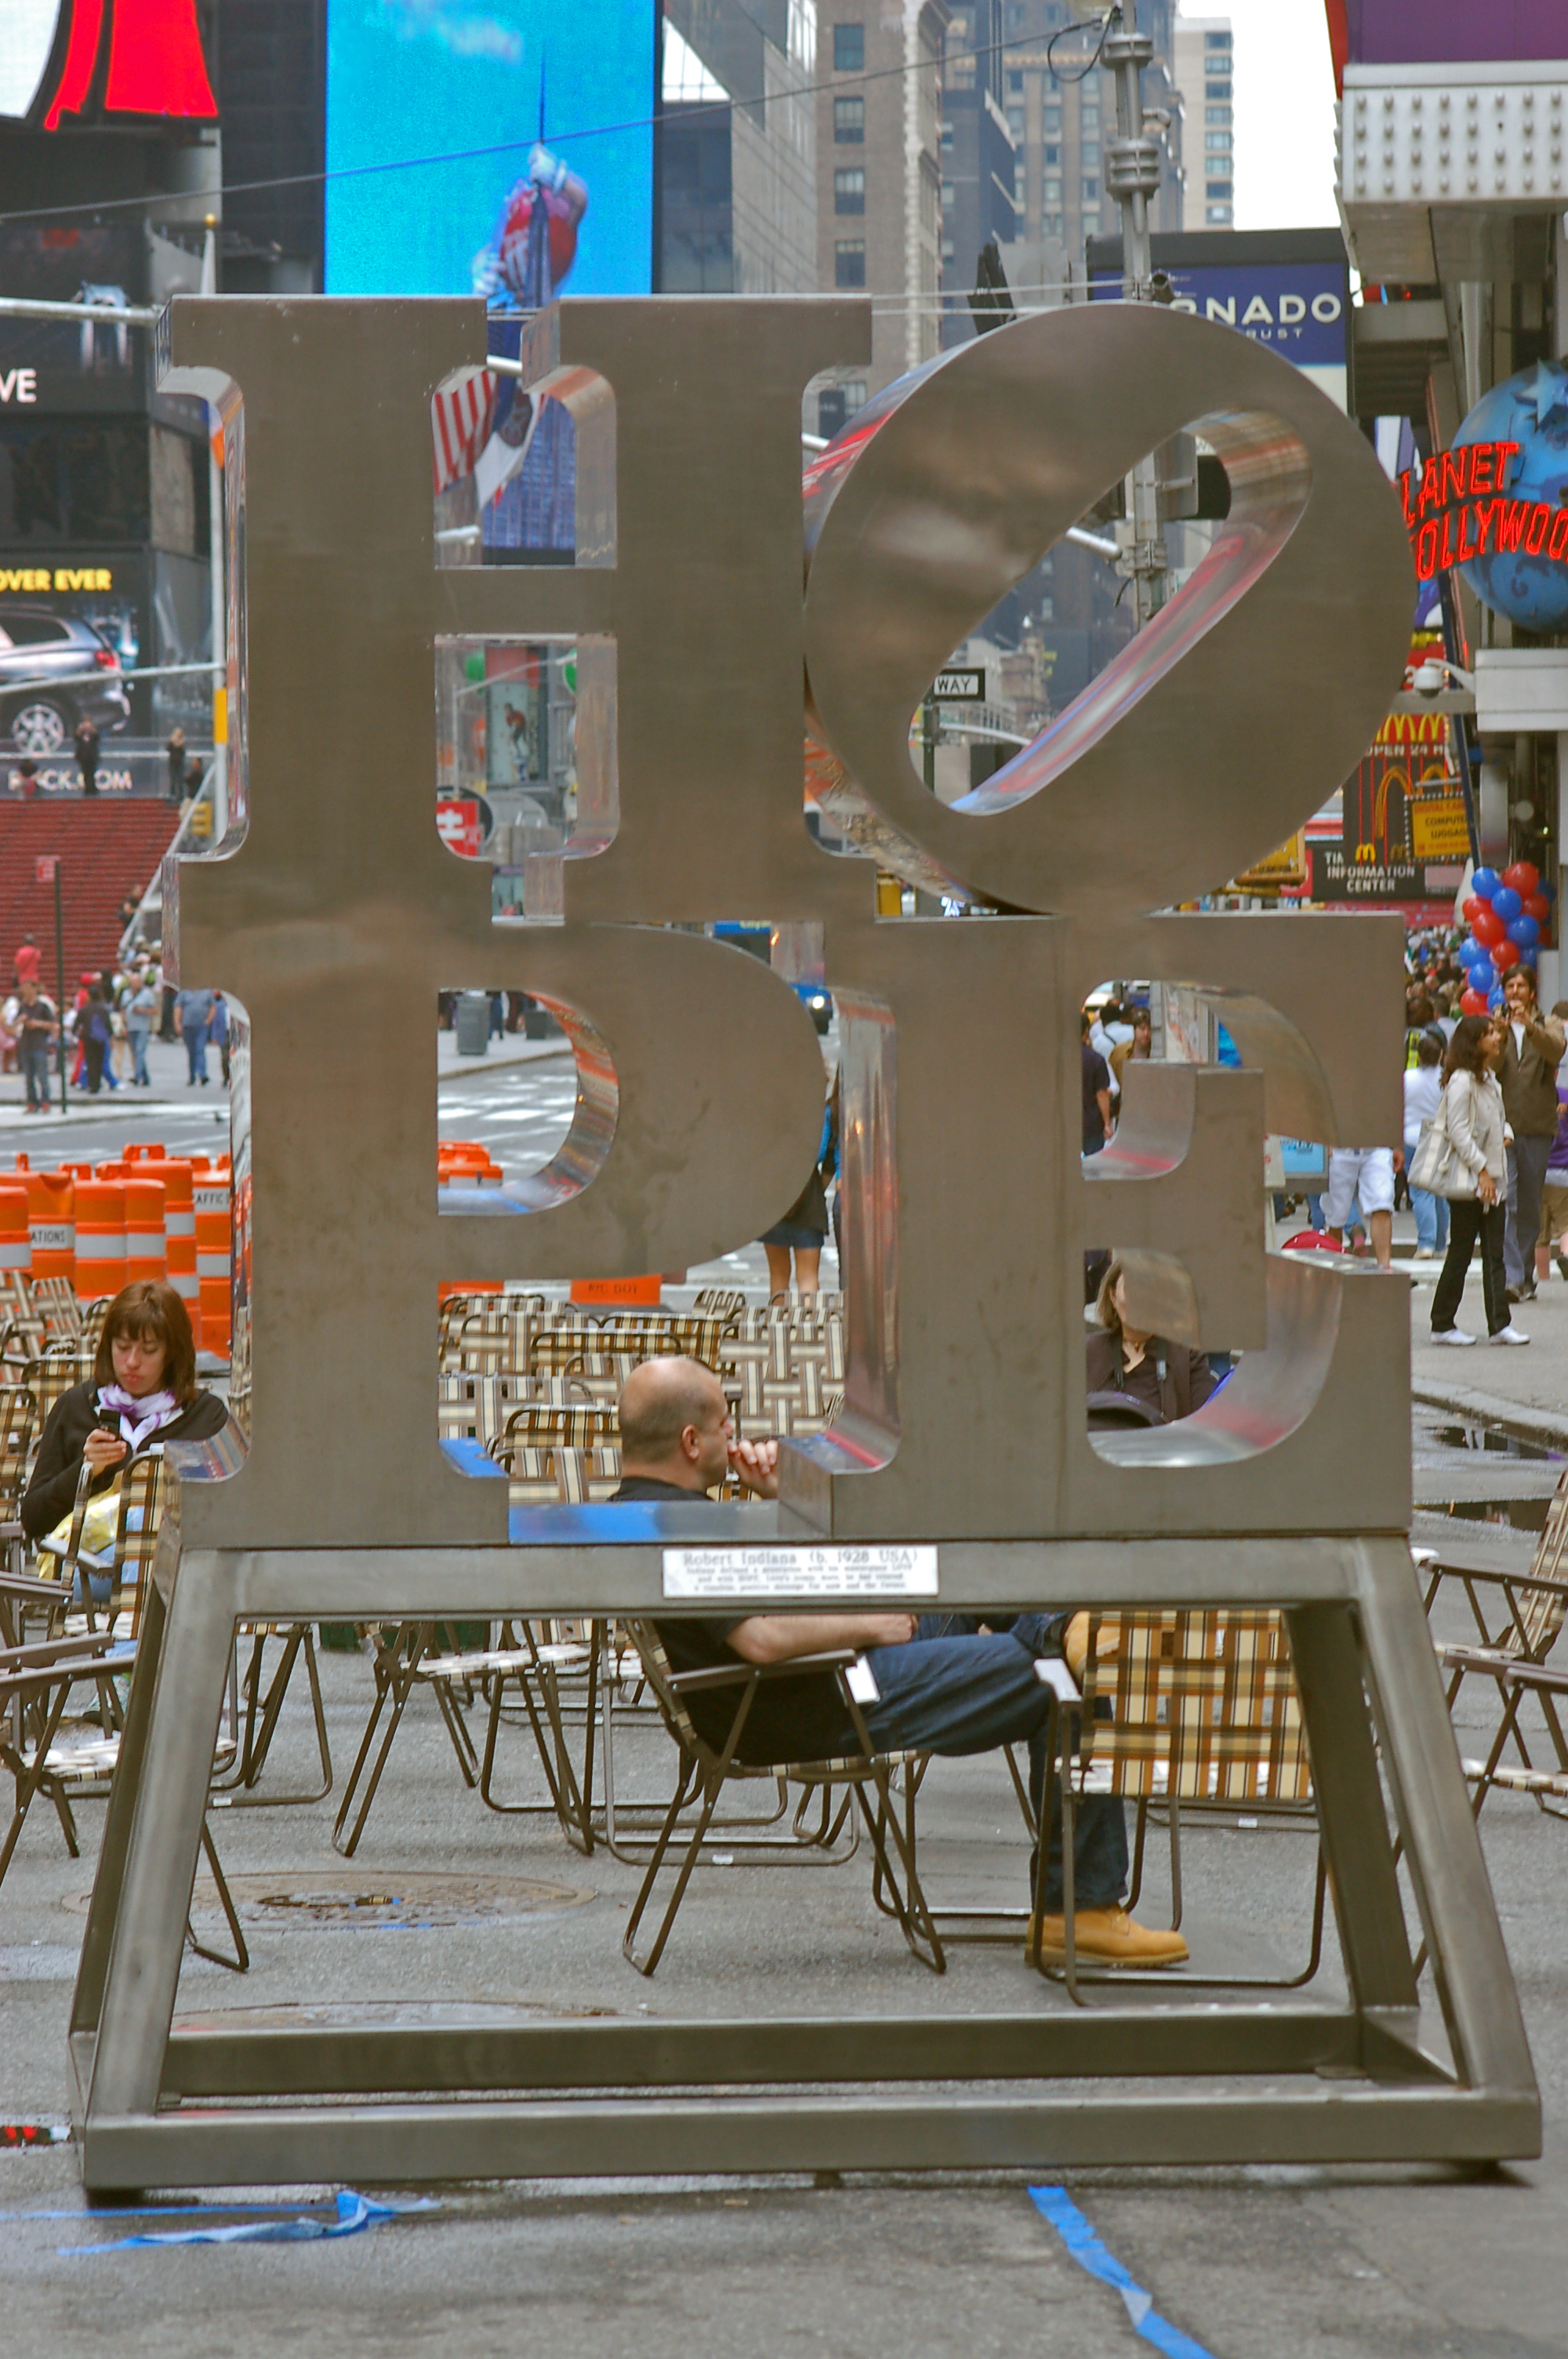 Robert Indiana, Hope, Times Square, New York. Foto met dank aan Rob Young, 2009, CC BY 2.0